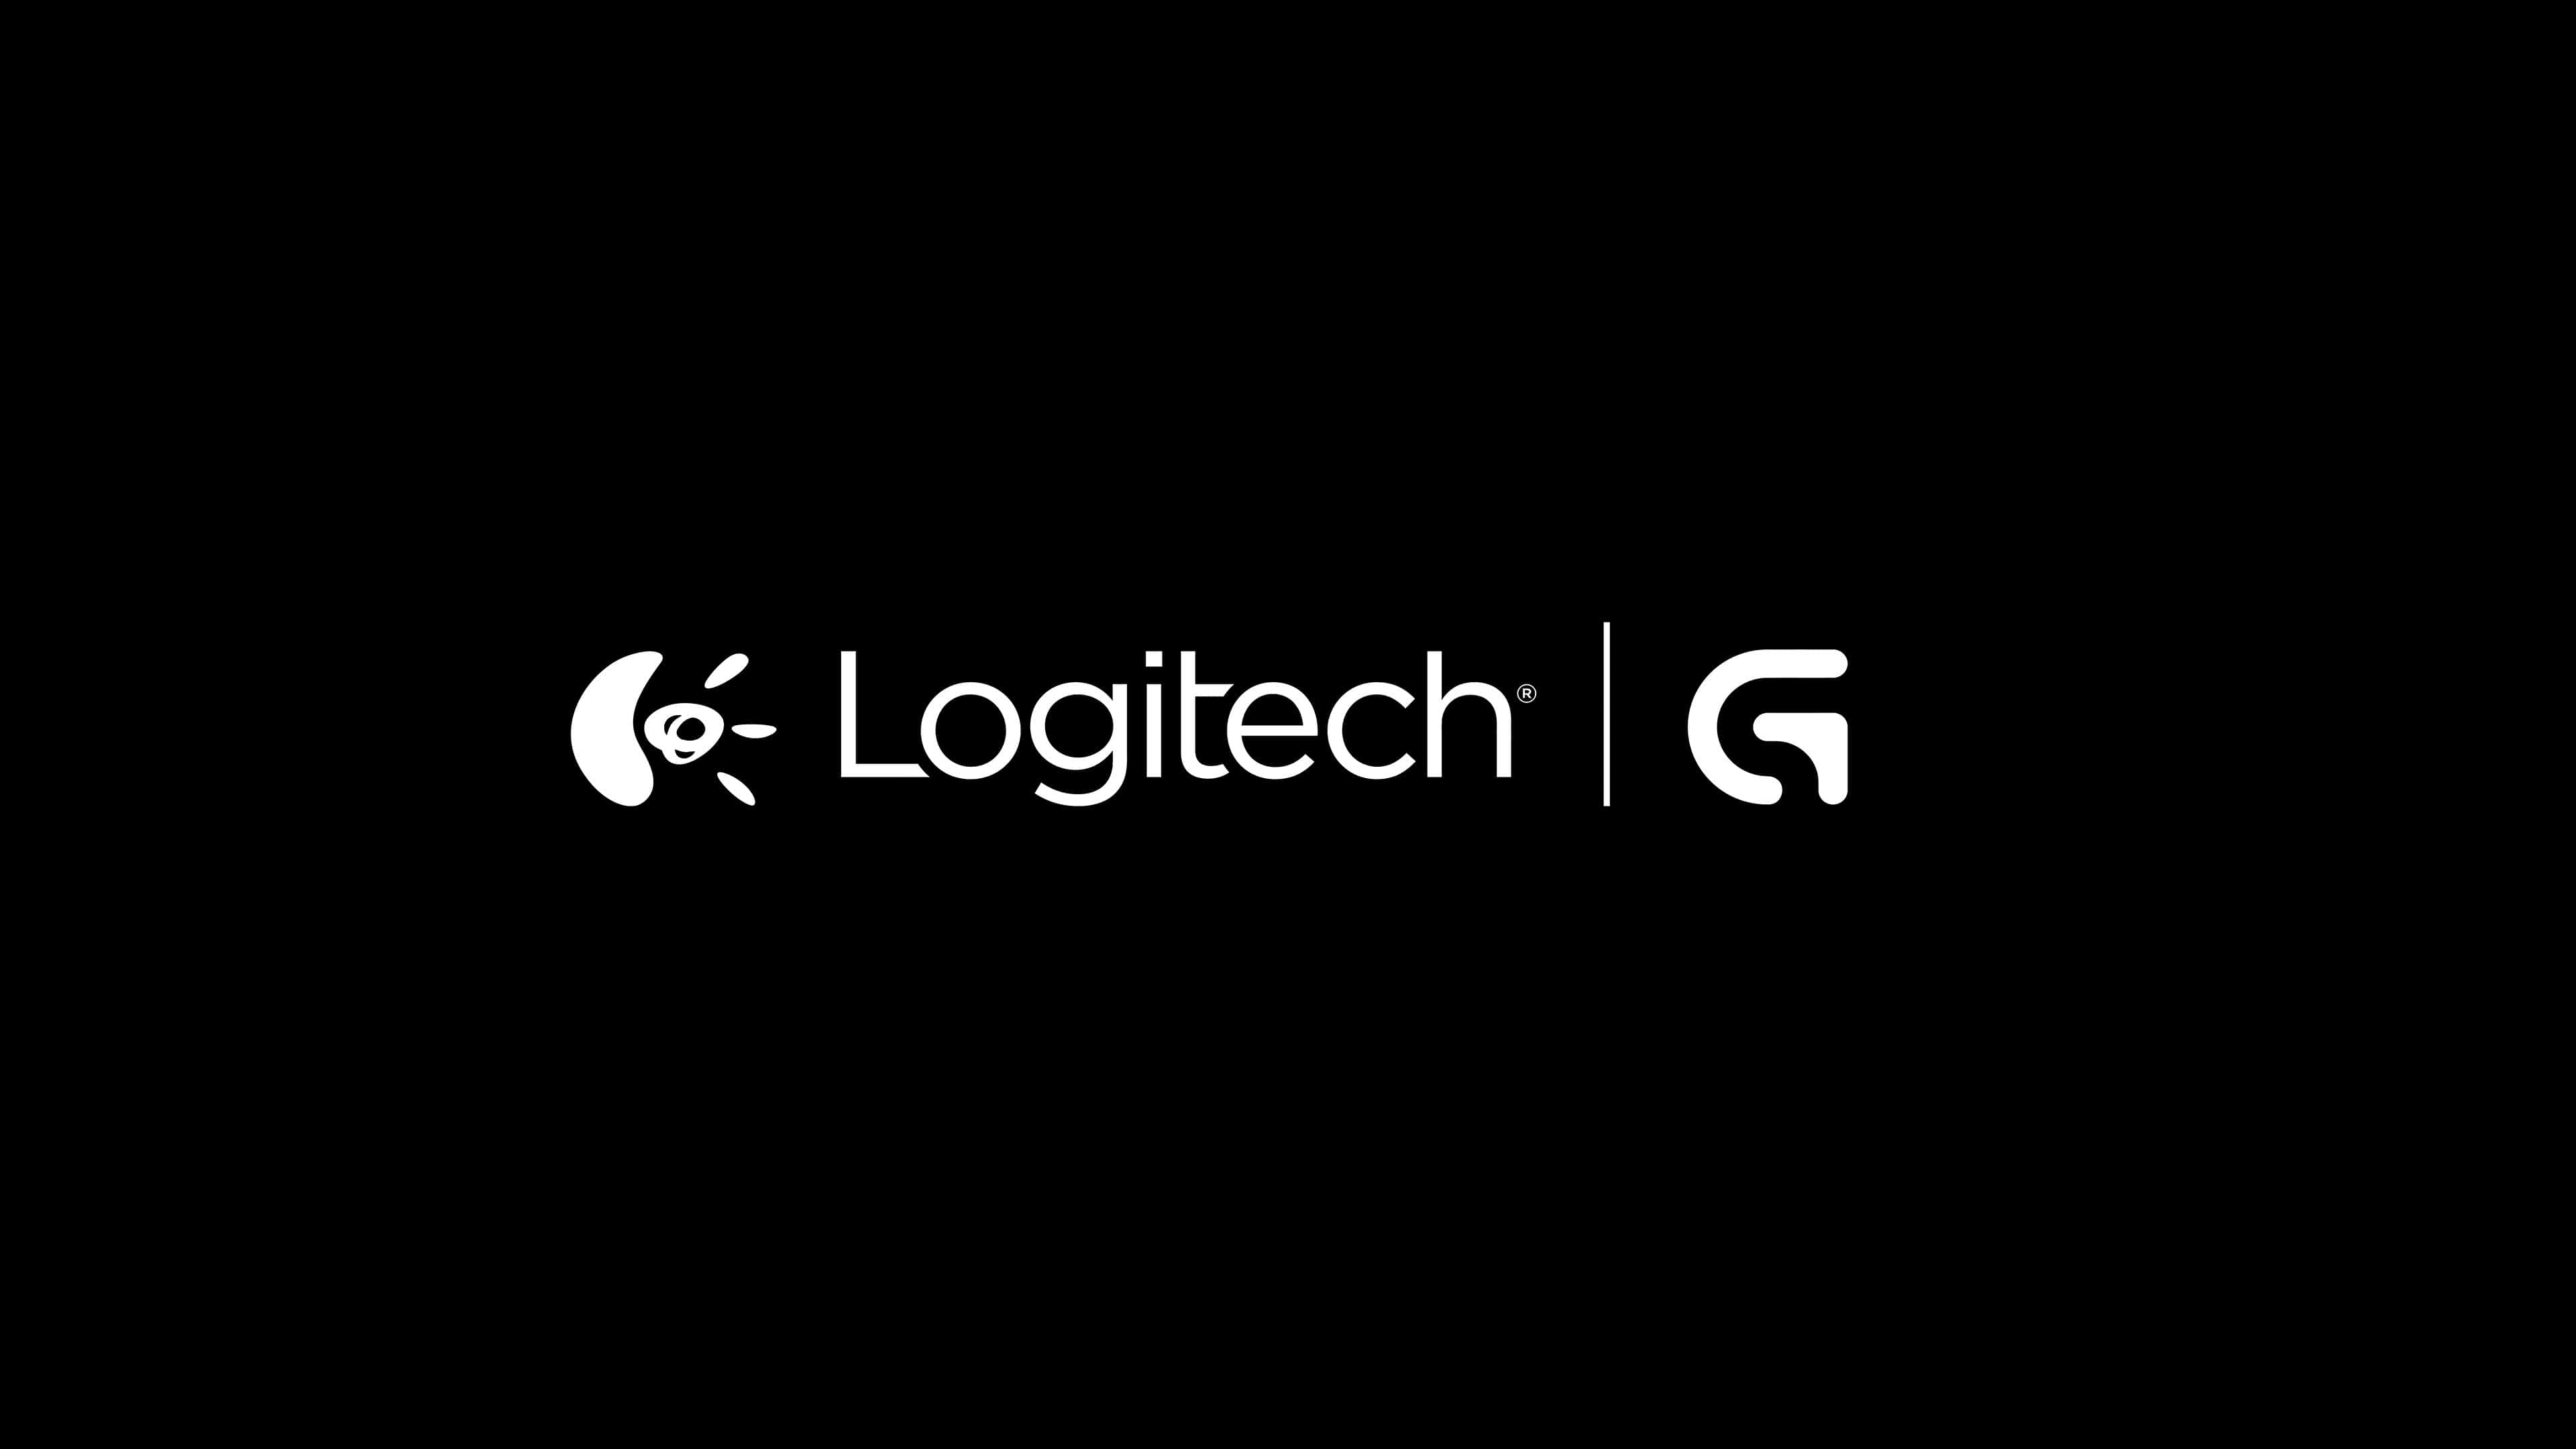 Logitech 4k Wallpapers Top Free Logitech 4k Backgrounds